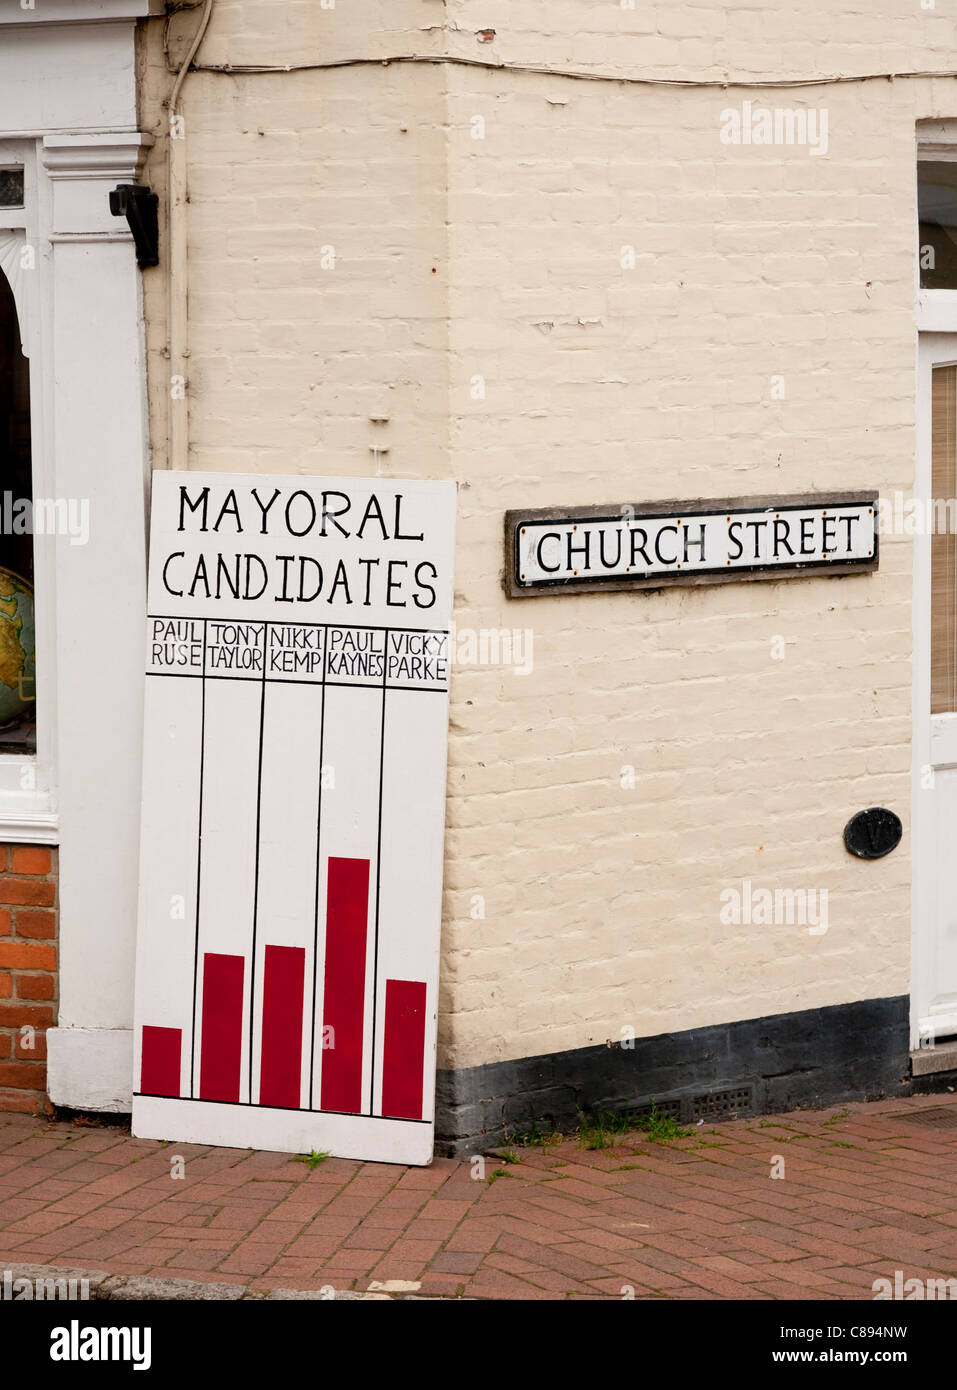 The mayoral election results for the 'Independent State of Cuckfield' Cuckfield, West Sussex - Stock Image